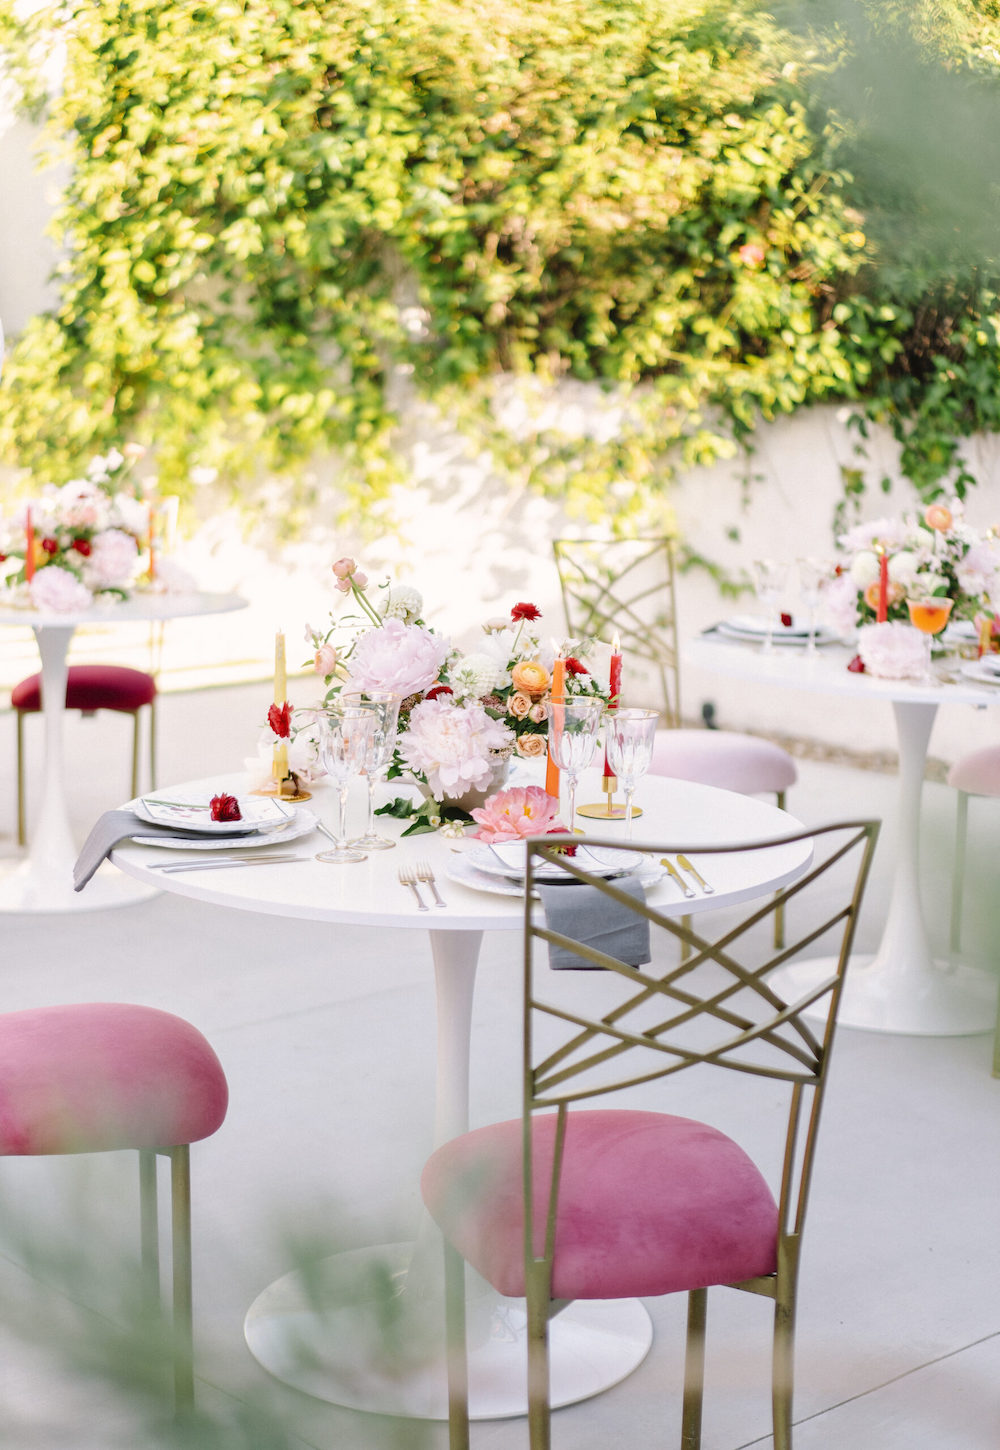 Guest seating at small tables for an intimate event.